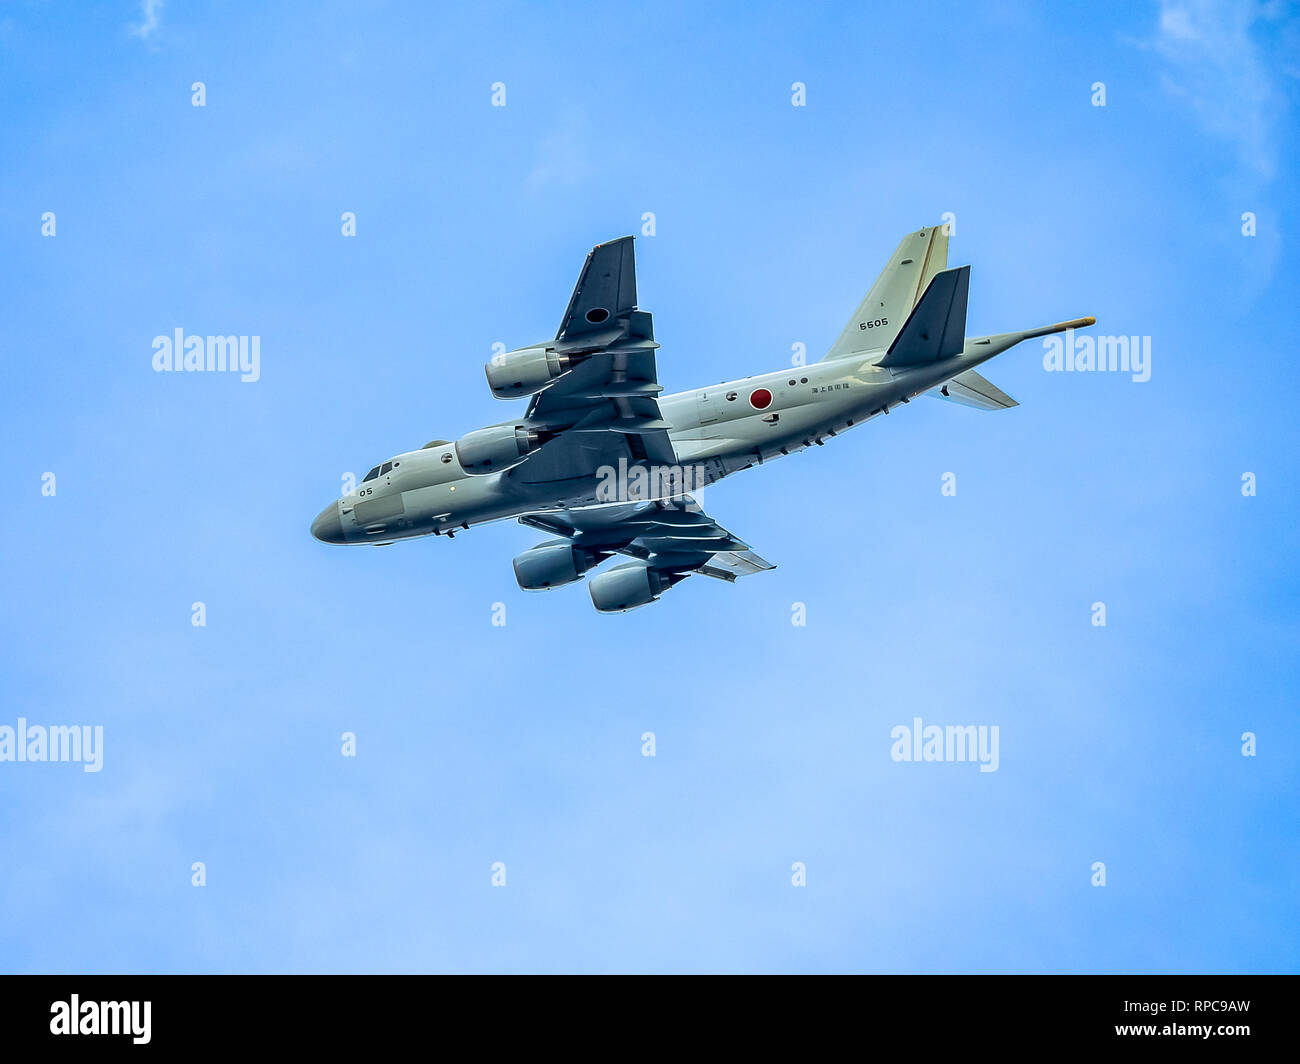 A Japanese Maritime Self Defense Force (JMSDF) Kawasaki P-1 Maritime Patrol Aircraft flies low near the Atsugi Air Station in Kanagawa Prefecture, Jap Stock Photo